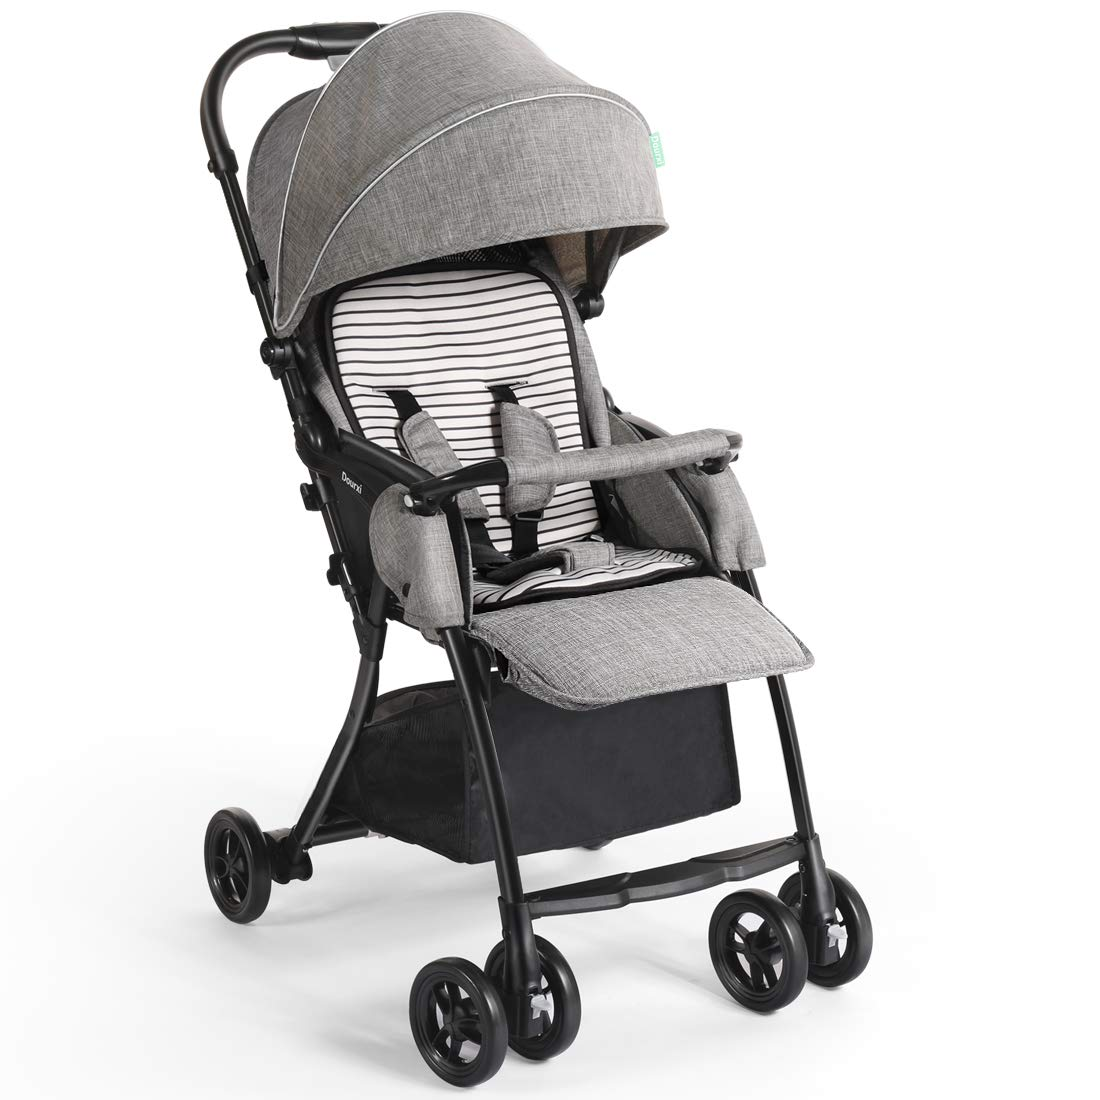 Dourxi Lightweight Stroller, One-Hand Fold Baby Stroller with 5-Point Safety Harness and Multi-Position Reclining Seat, Removable Seat Padding, Extended Canopy, Large Storage Basket - Linen Ash Grey